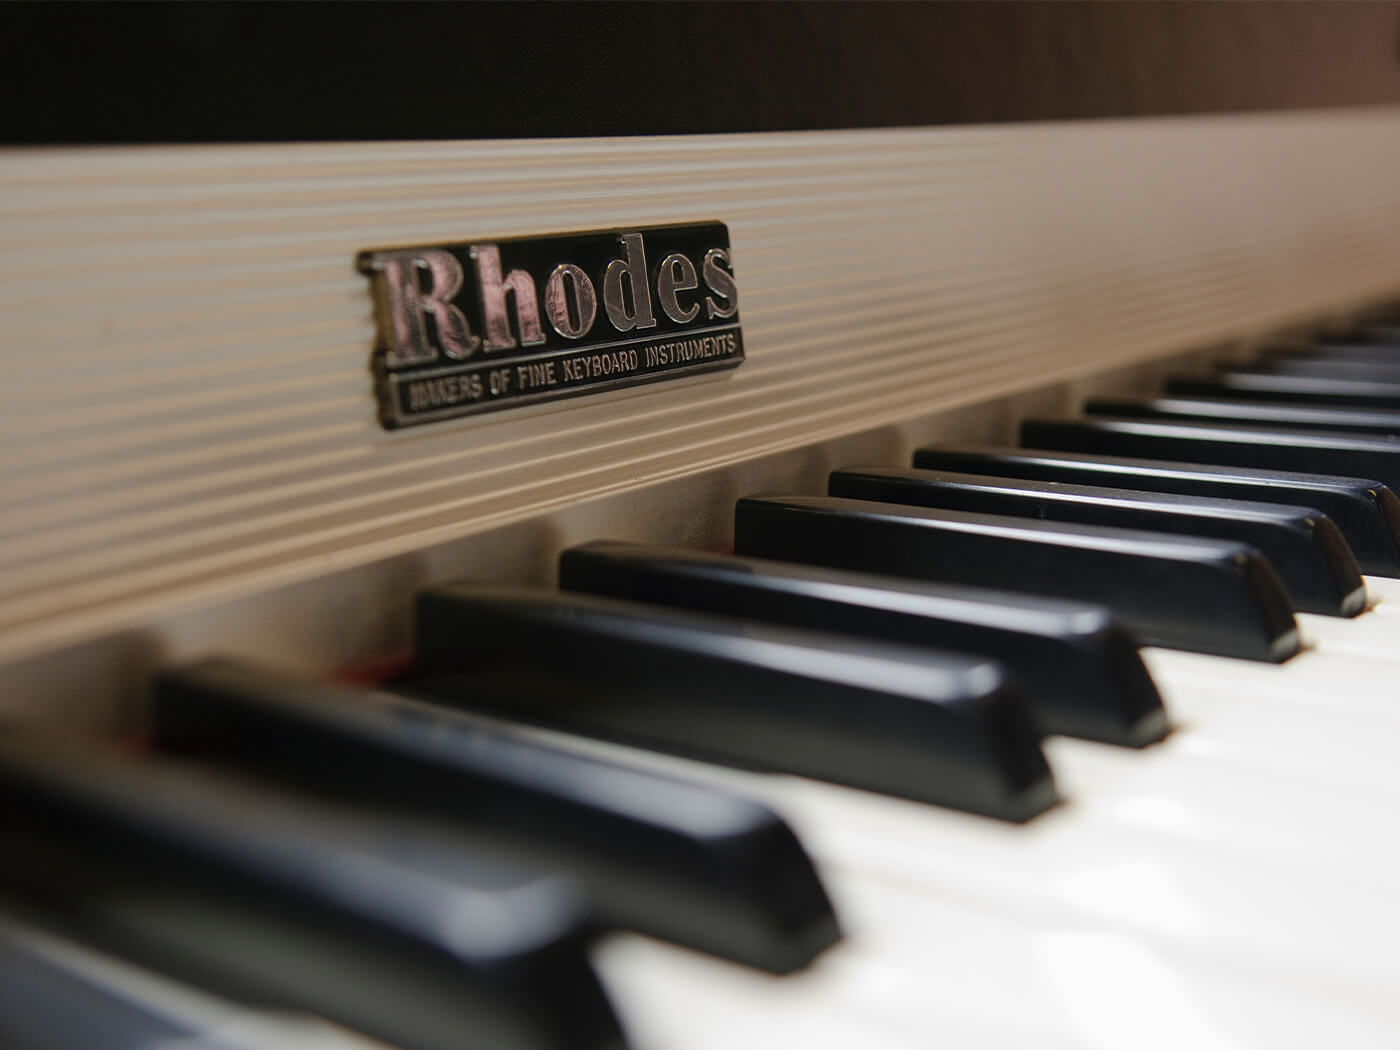 """Rhodes says it's working on making """"the best Rhodes keyboard yet"""""""